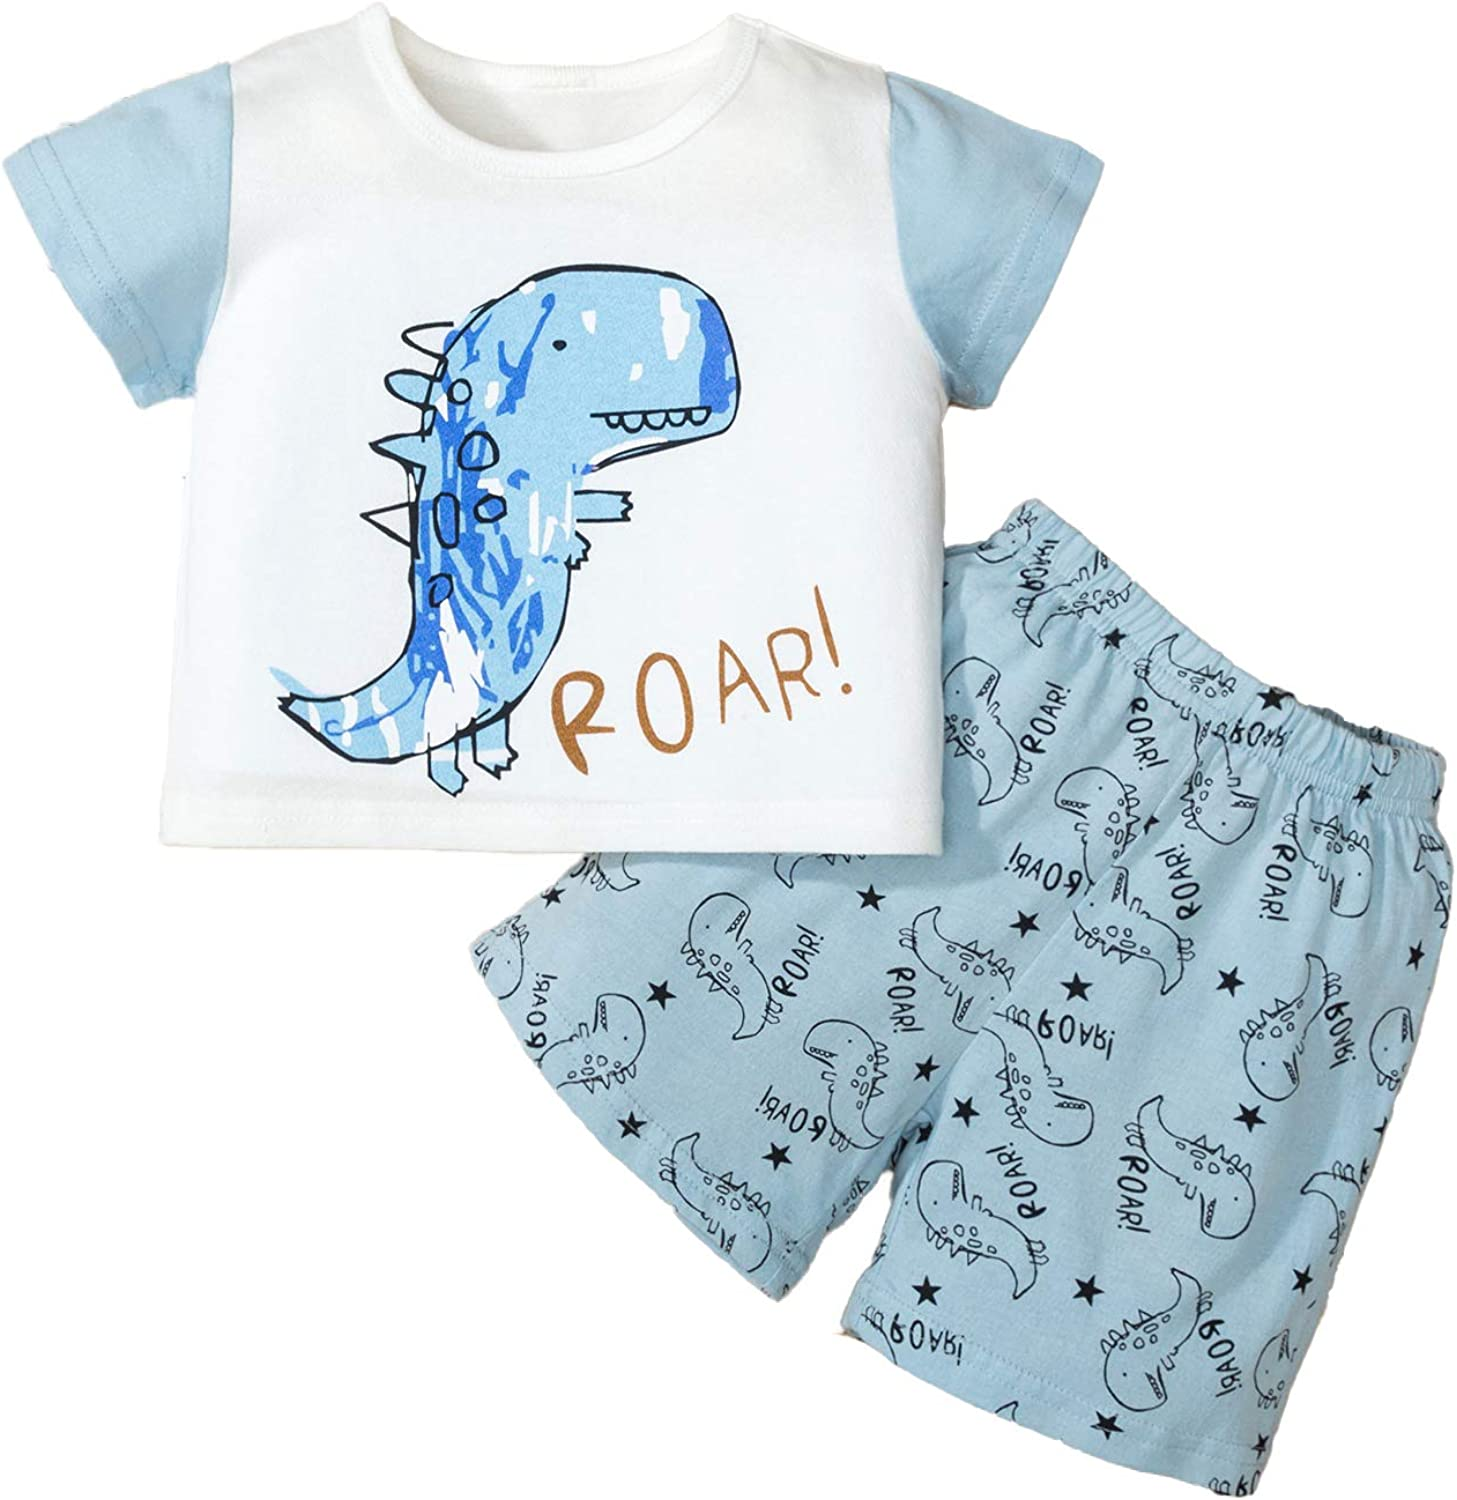 Toddler Boy Short Sleeve Cartoon Pattern Tops Shirt Elastic Star Printed Shorts Outfit for 1-6T